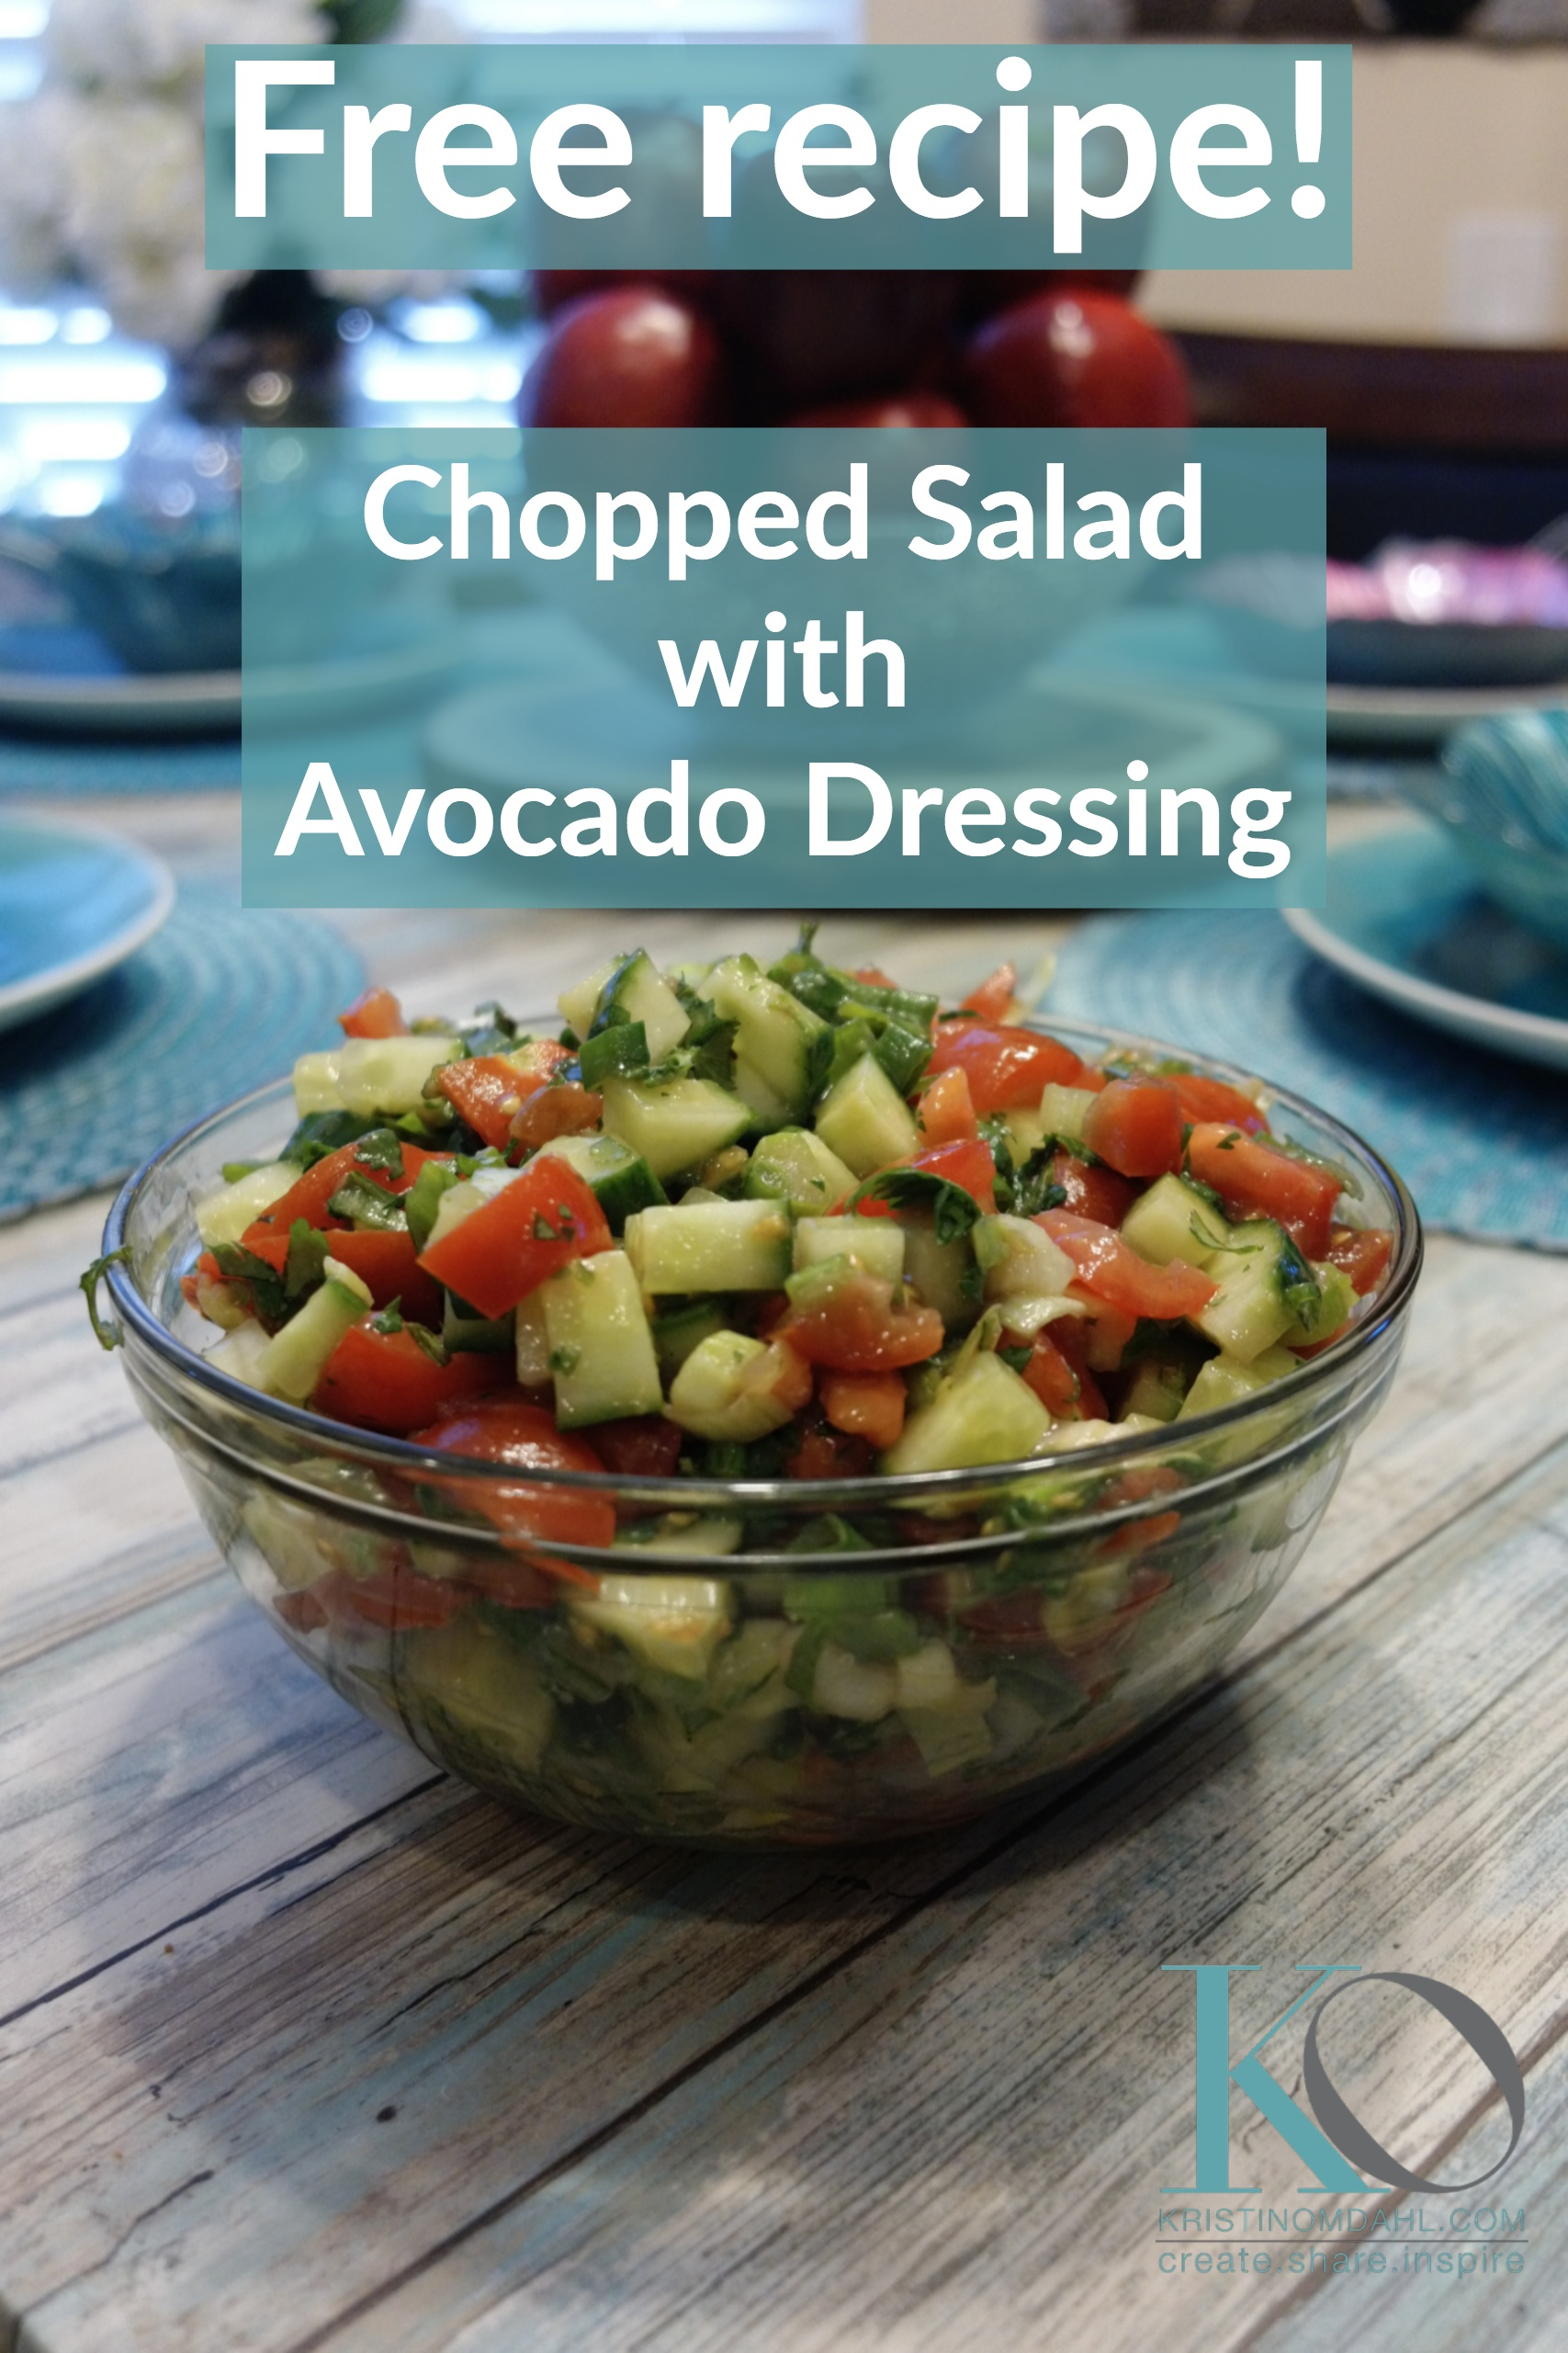 Avocado Dressing Pinterest 1 (1).jpg